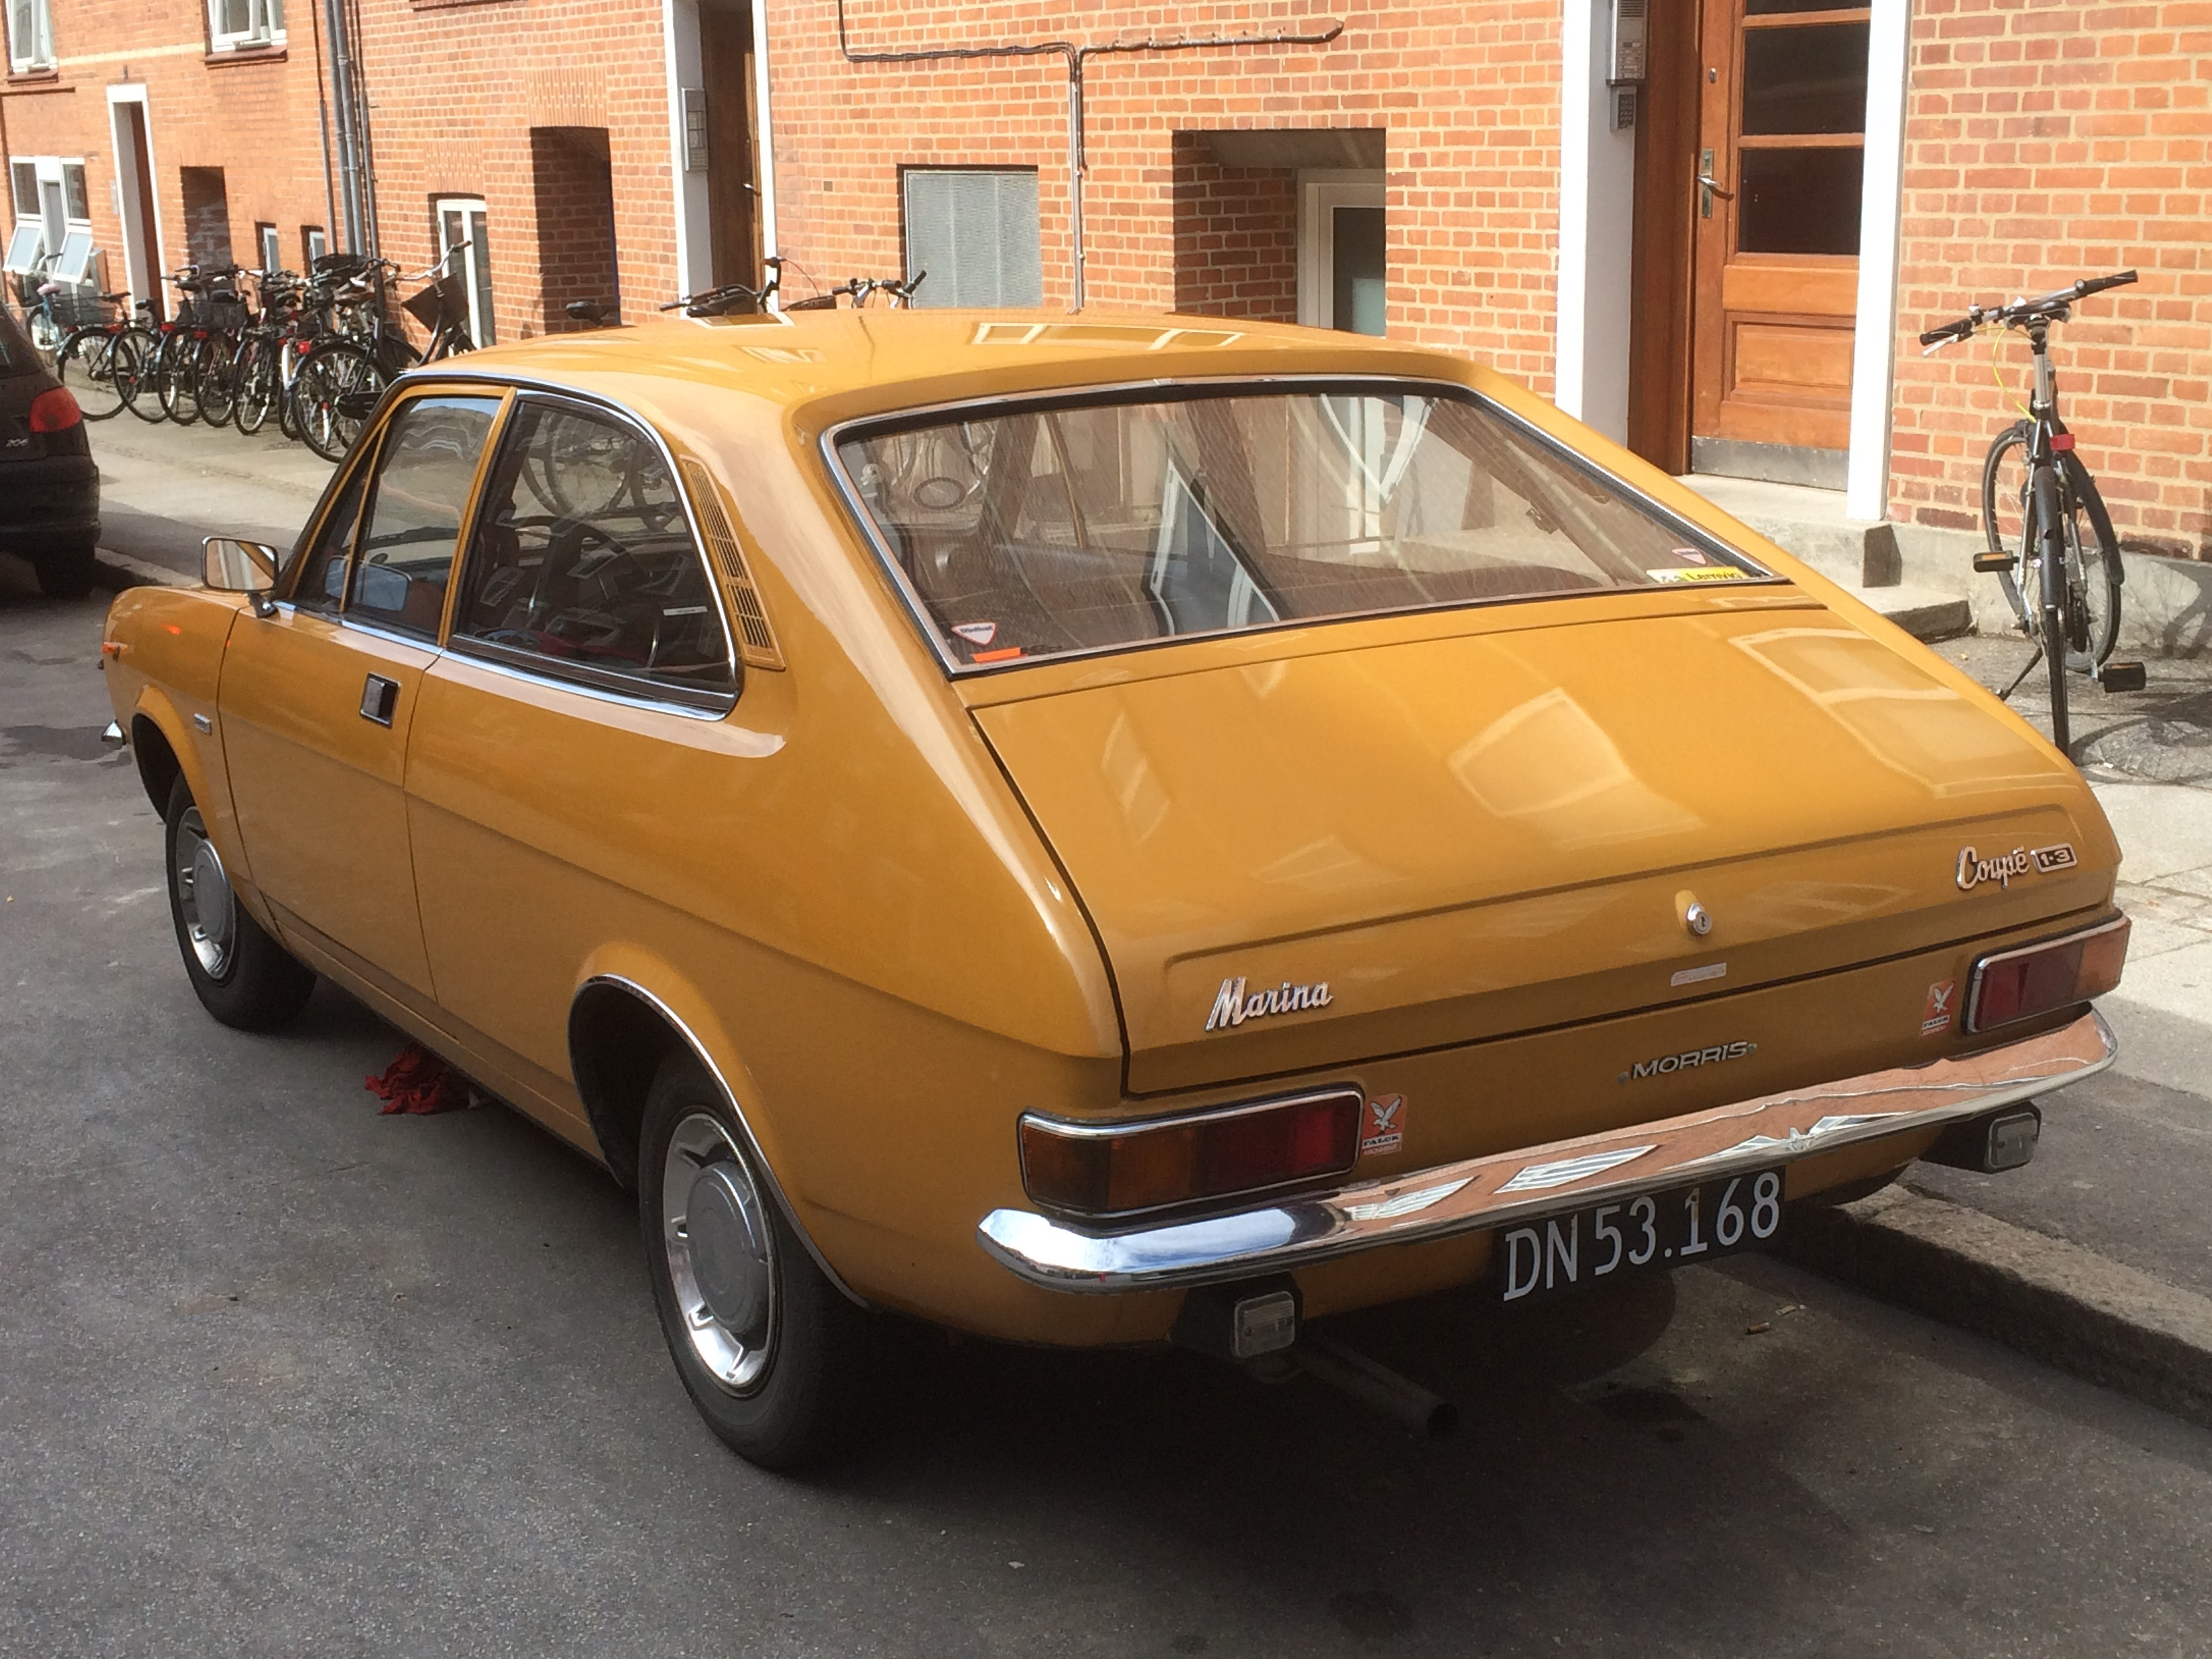 Two Car Garages A Photo For Sunday 1971 1979 Morris Marina 1 3 Super